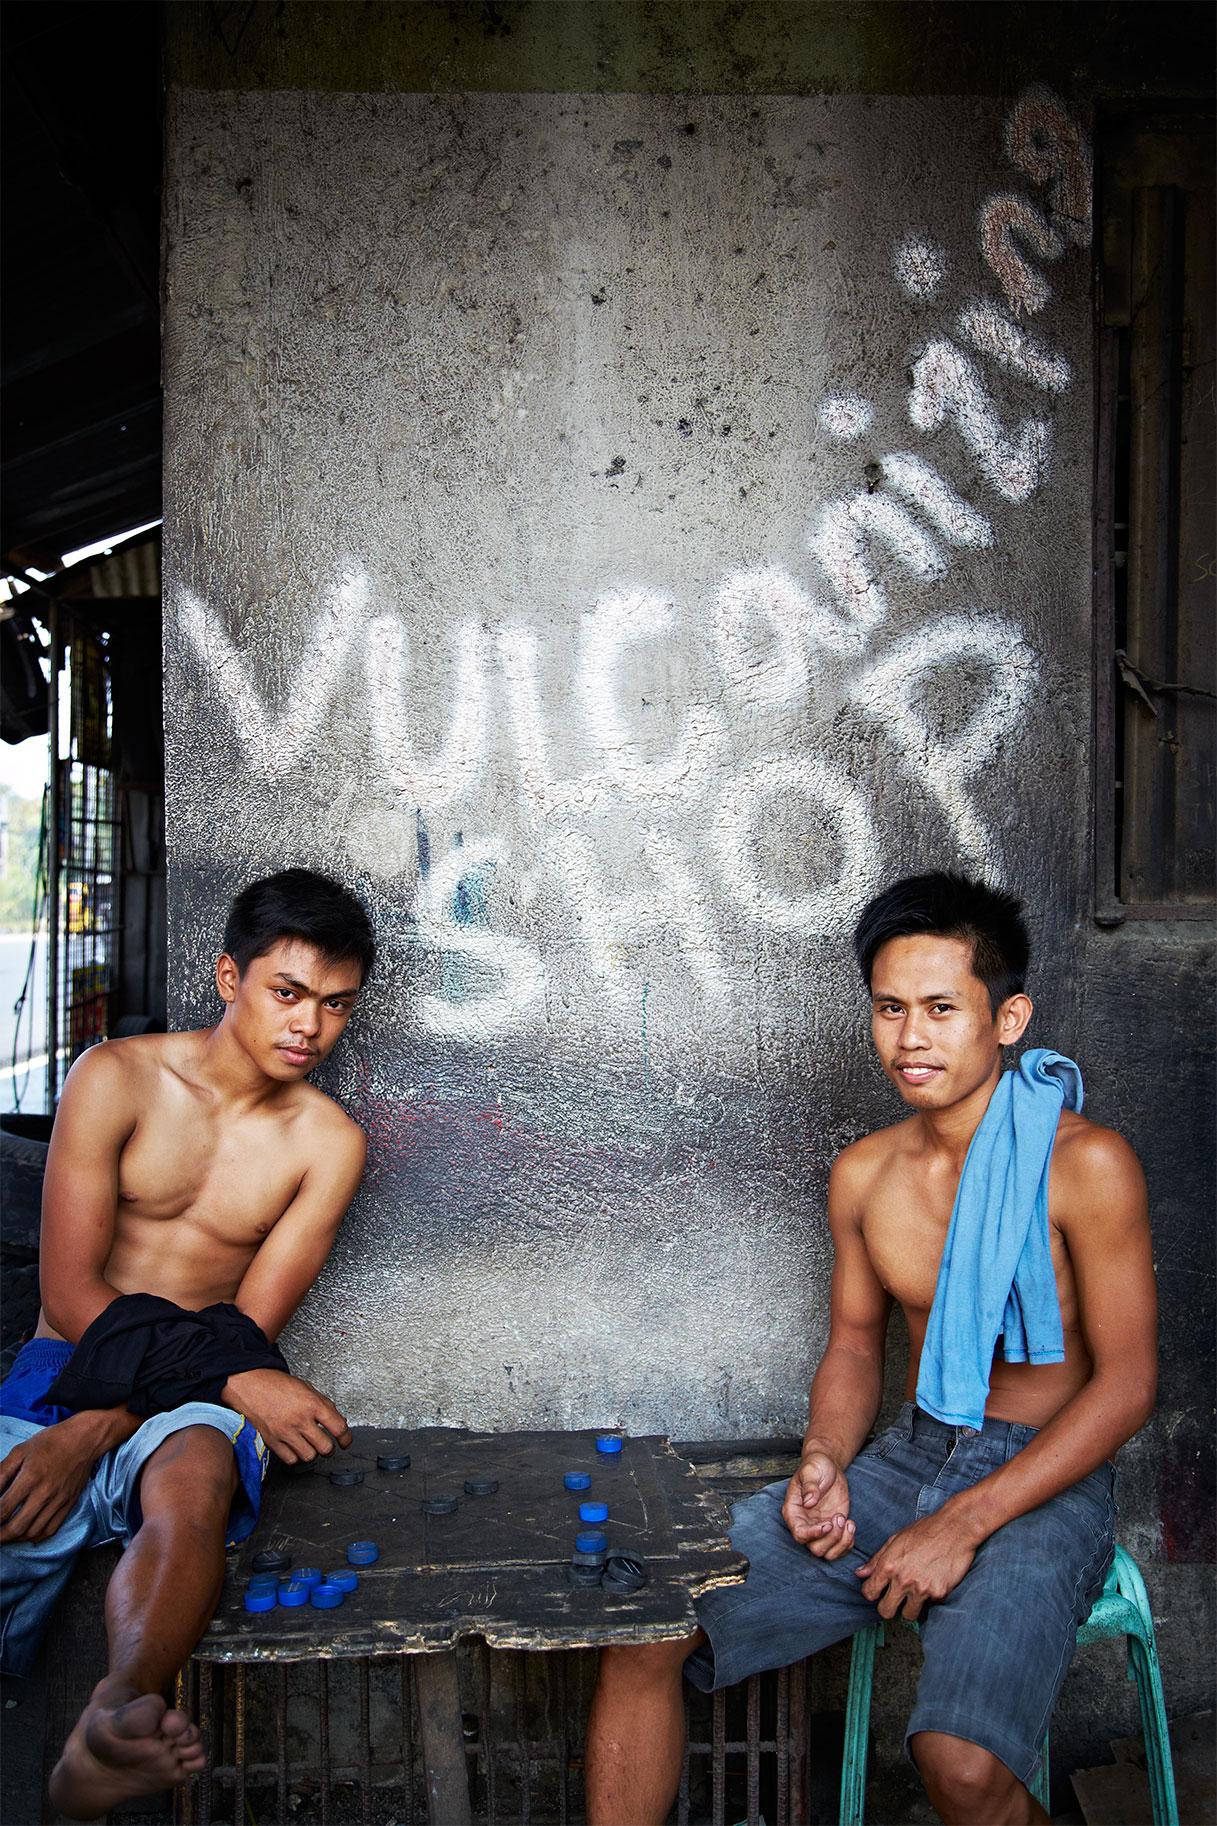 Workers_Checkers_Tire-Shop_Philippines